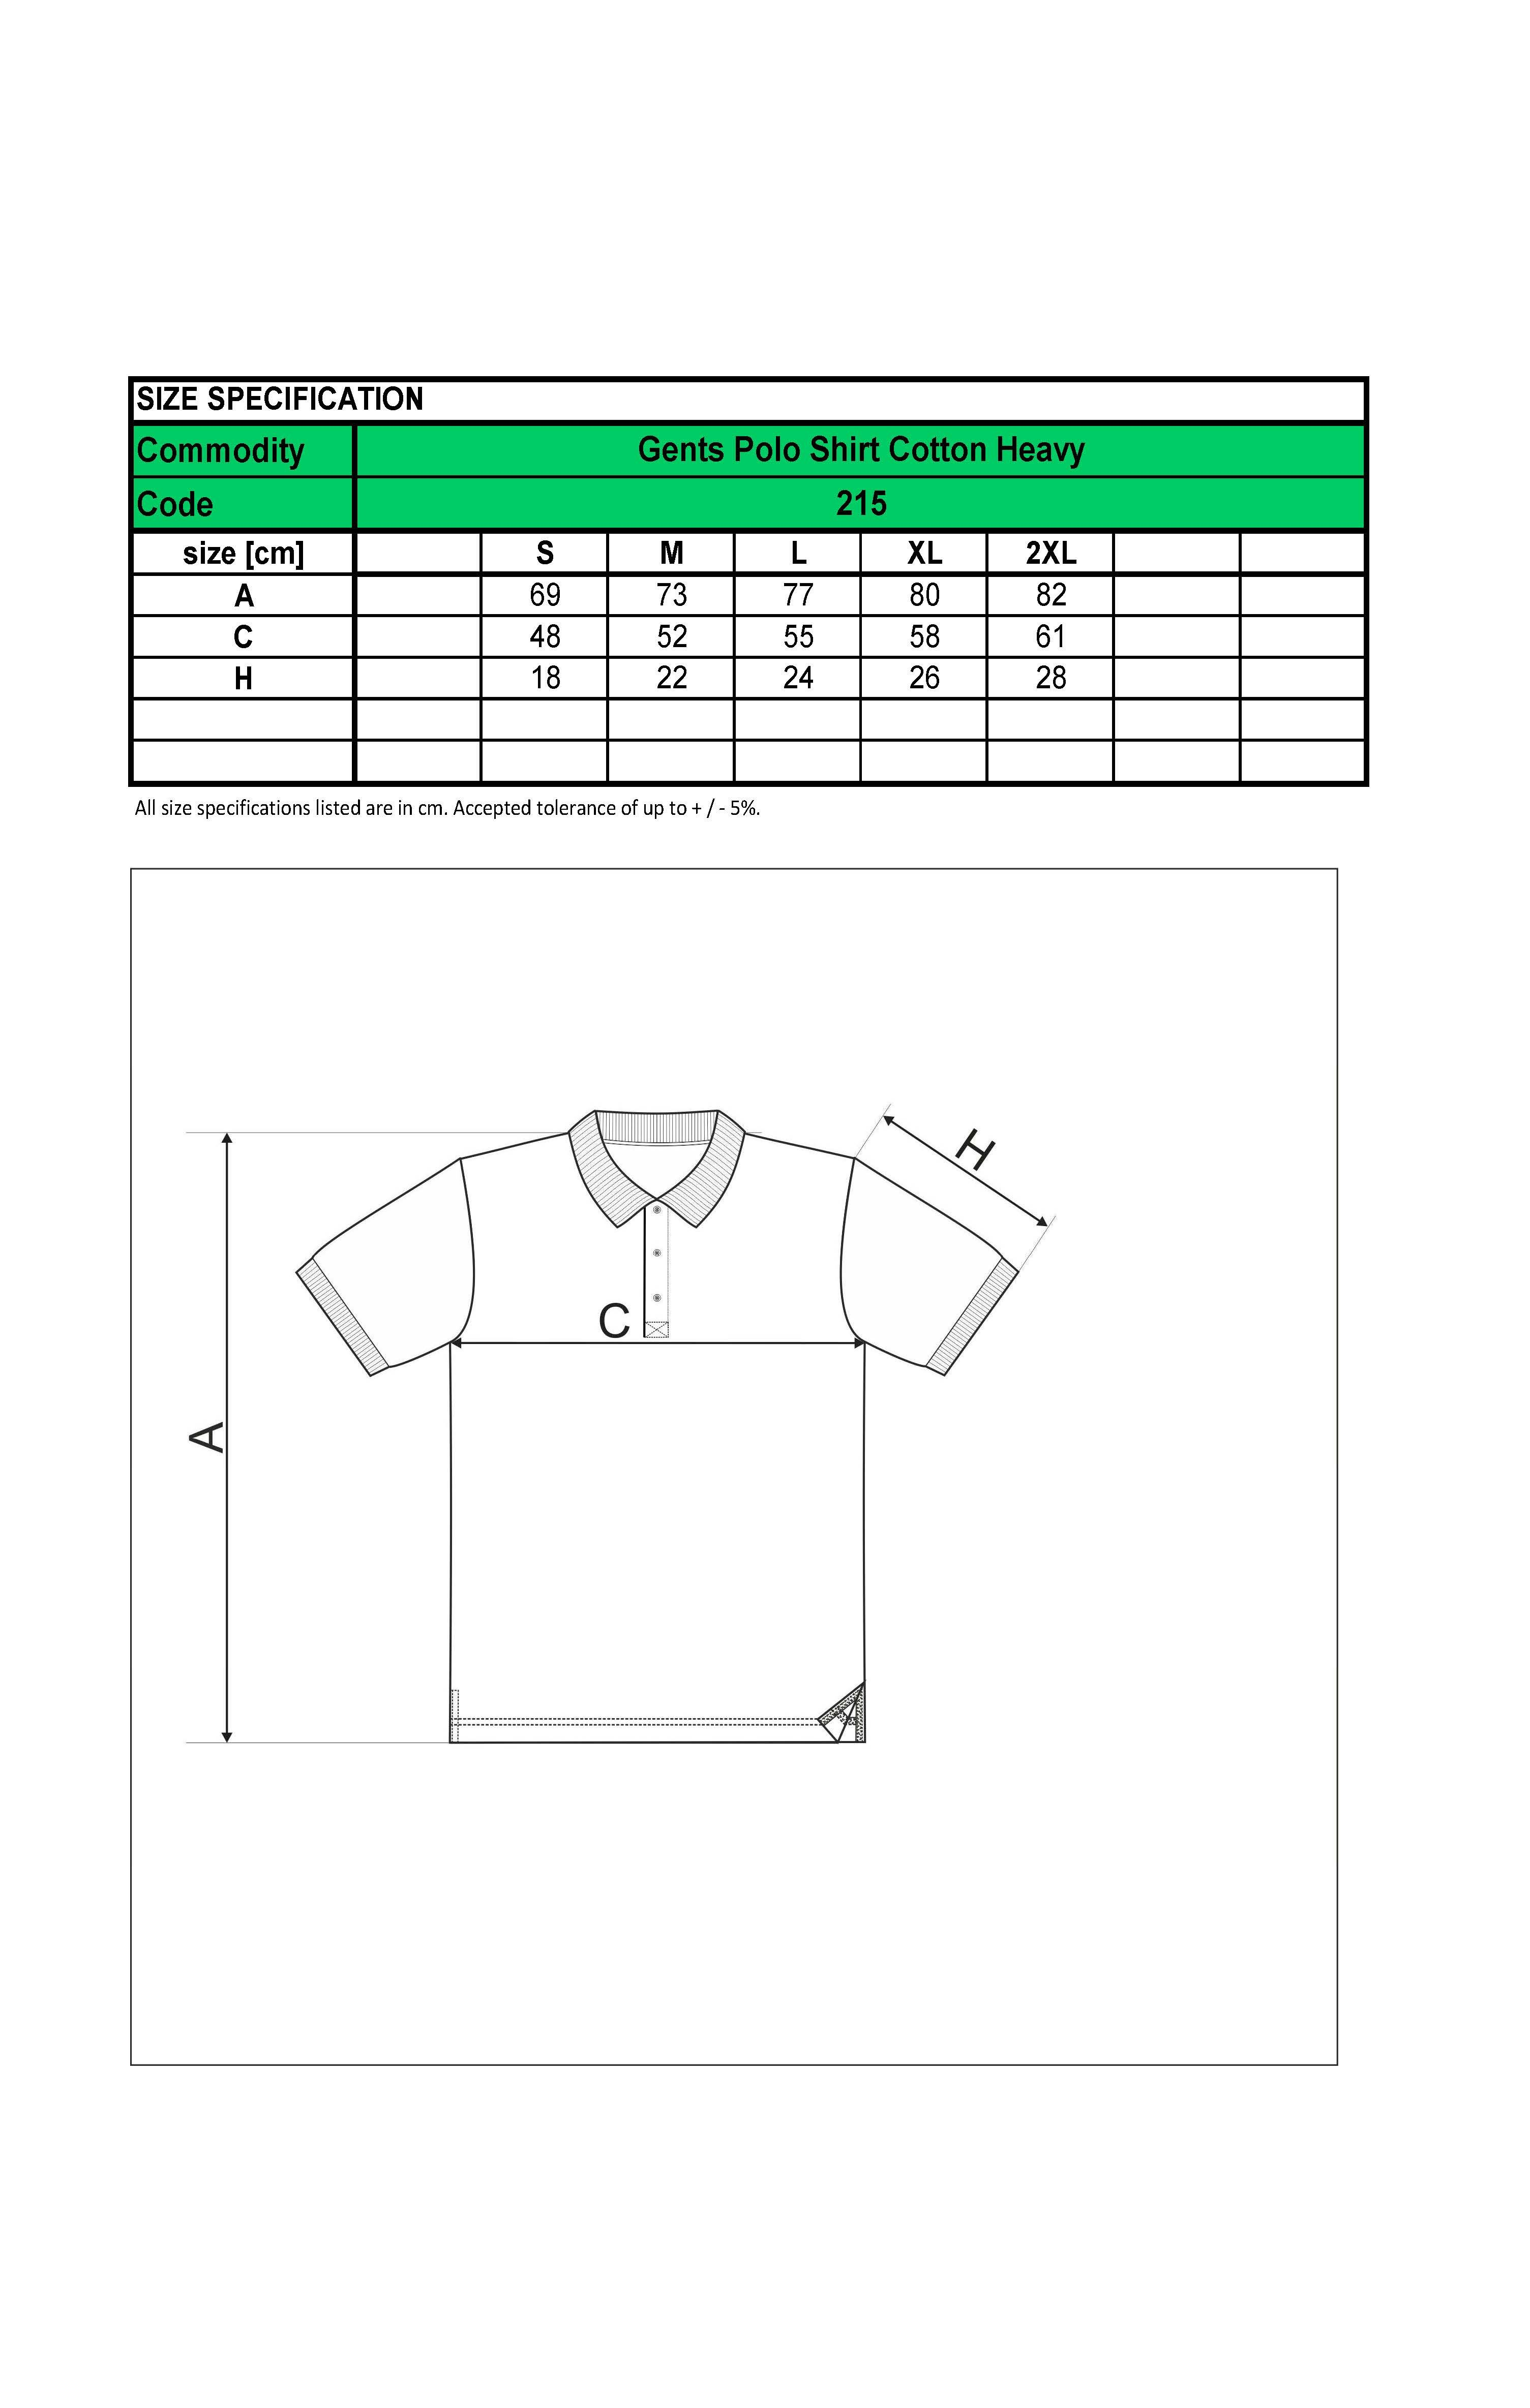 Custom Printed Promotional White Polo Shirts 215 size guide- www.ontimeprint.co.uk